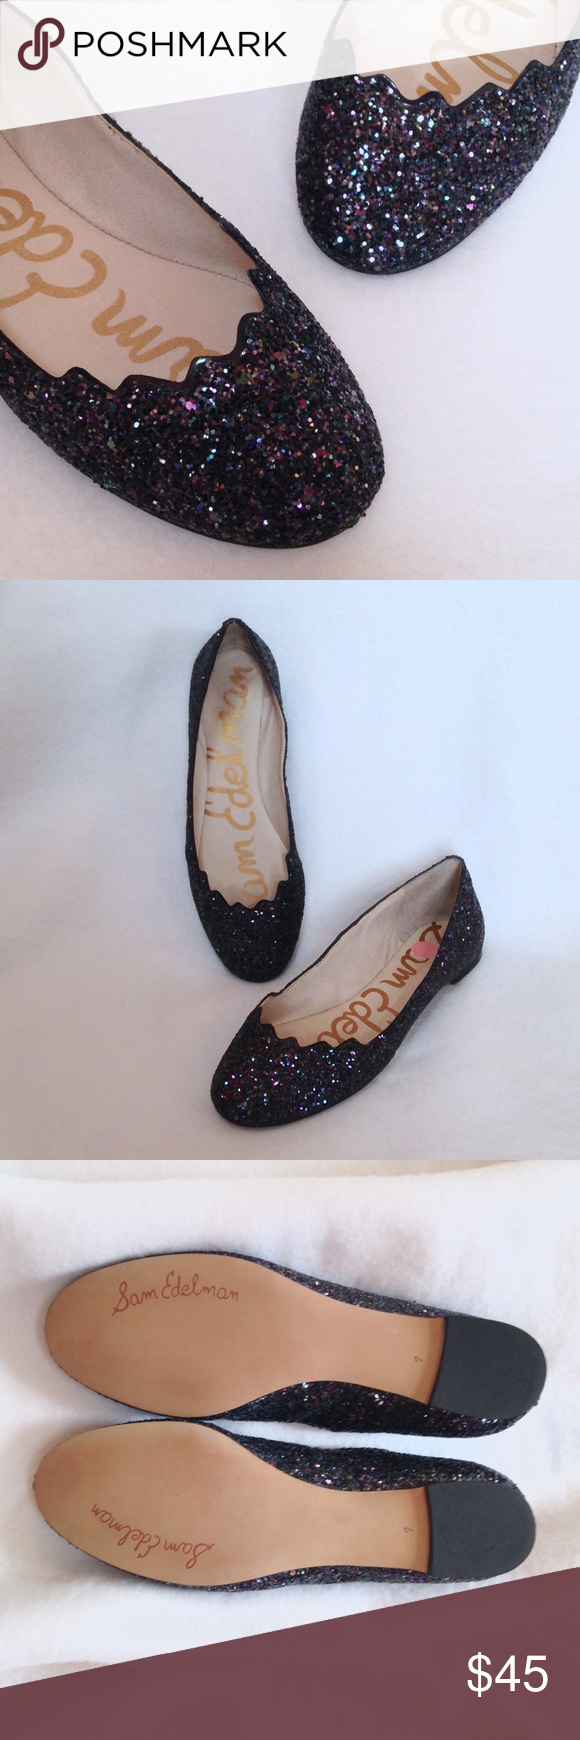 38a298428 Sam Edelman Alaine Glitter Flats - NWOT Sam Edelman Alaine glitter flats. Brand  new without tags or box. Pretty scalloped design at the toe and deep glitter  ...